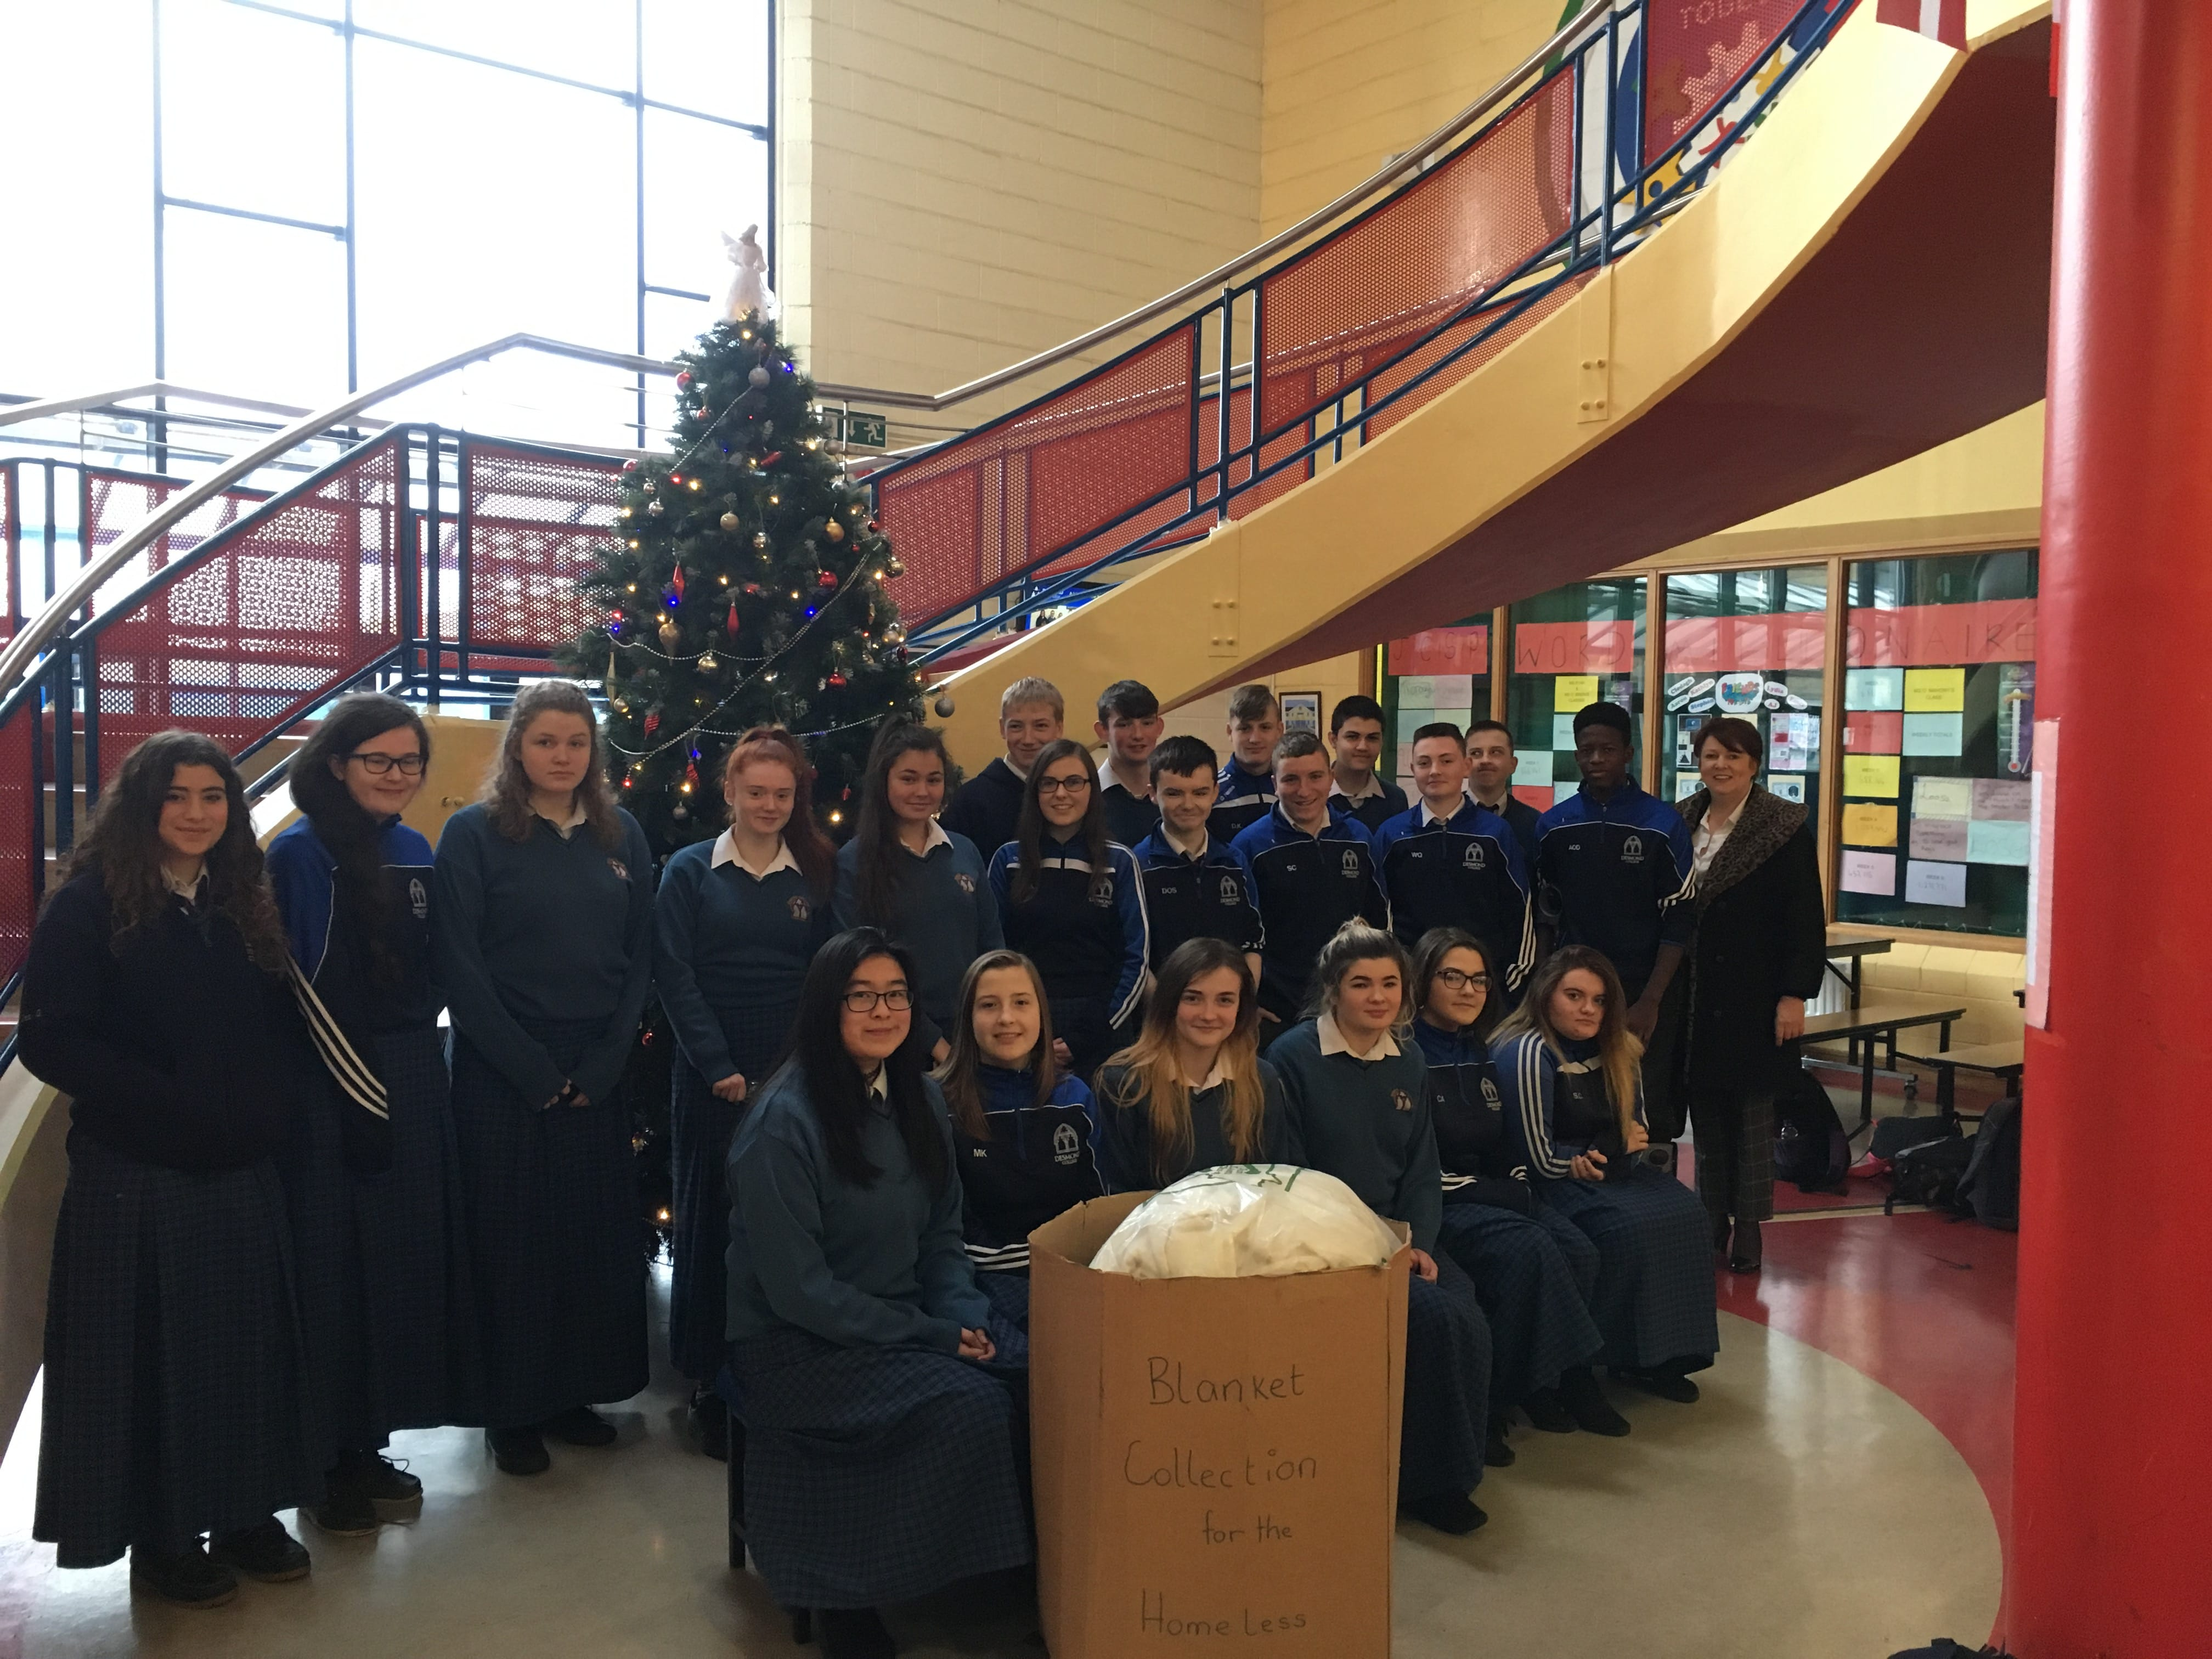 Dec 2017: Ms Liston's 3rd Year Rang Gemma class who held a blanket collection in Desmond College in aid of the Simon Community